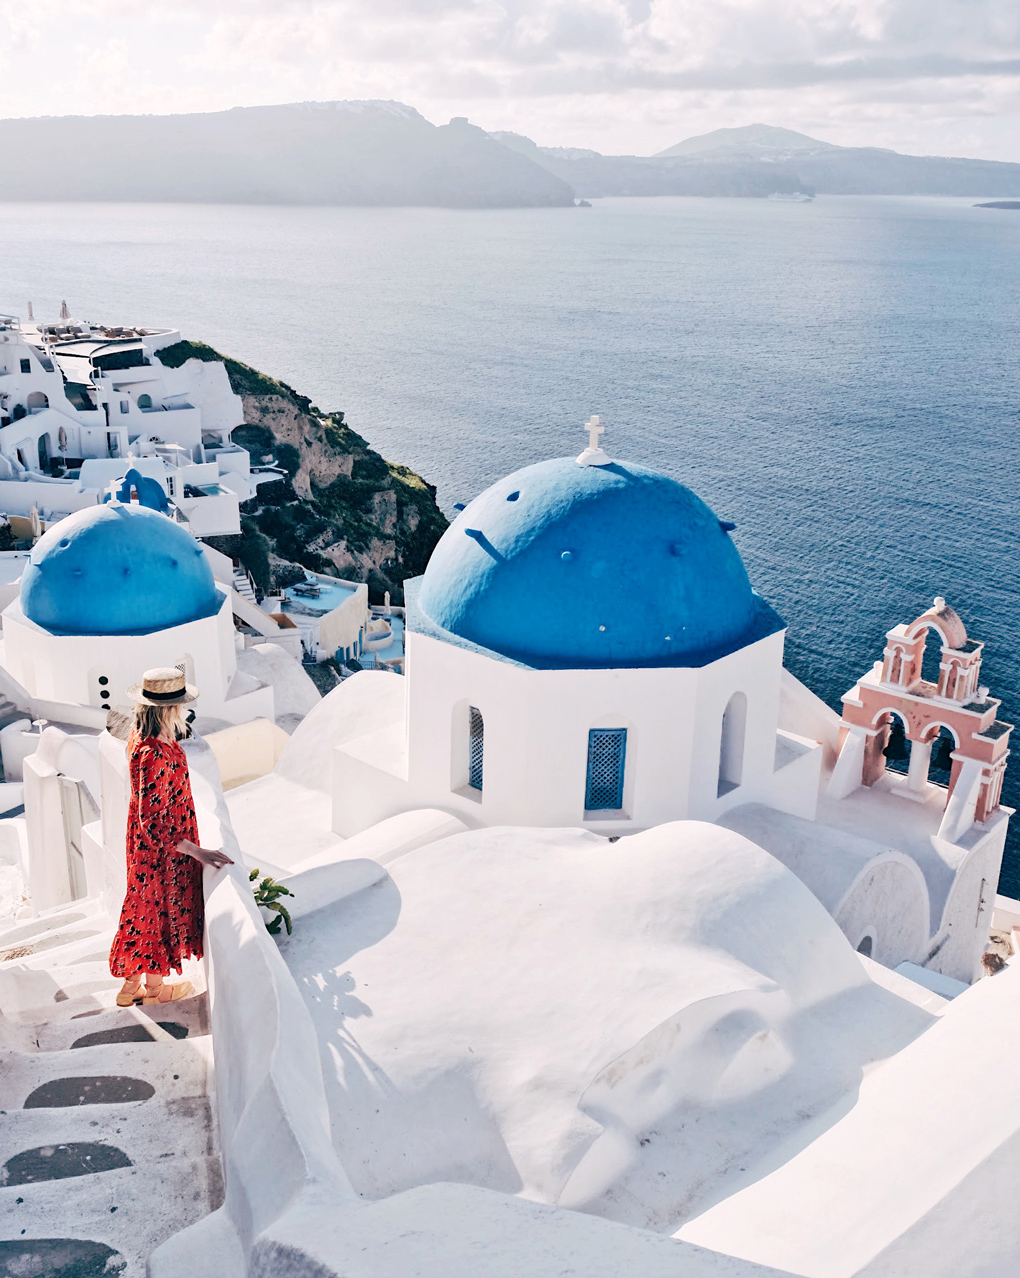 The worrying future of Greece's most Instagrammable island